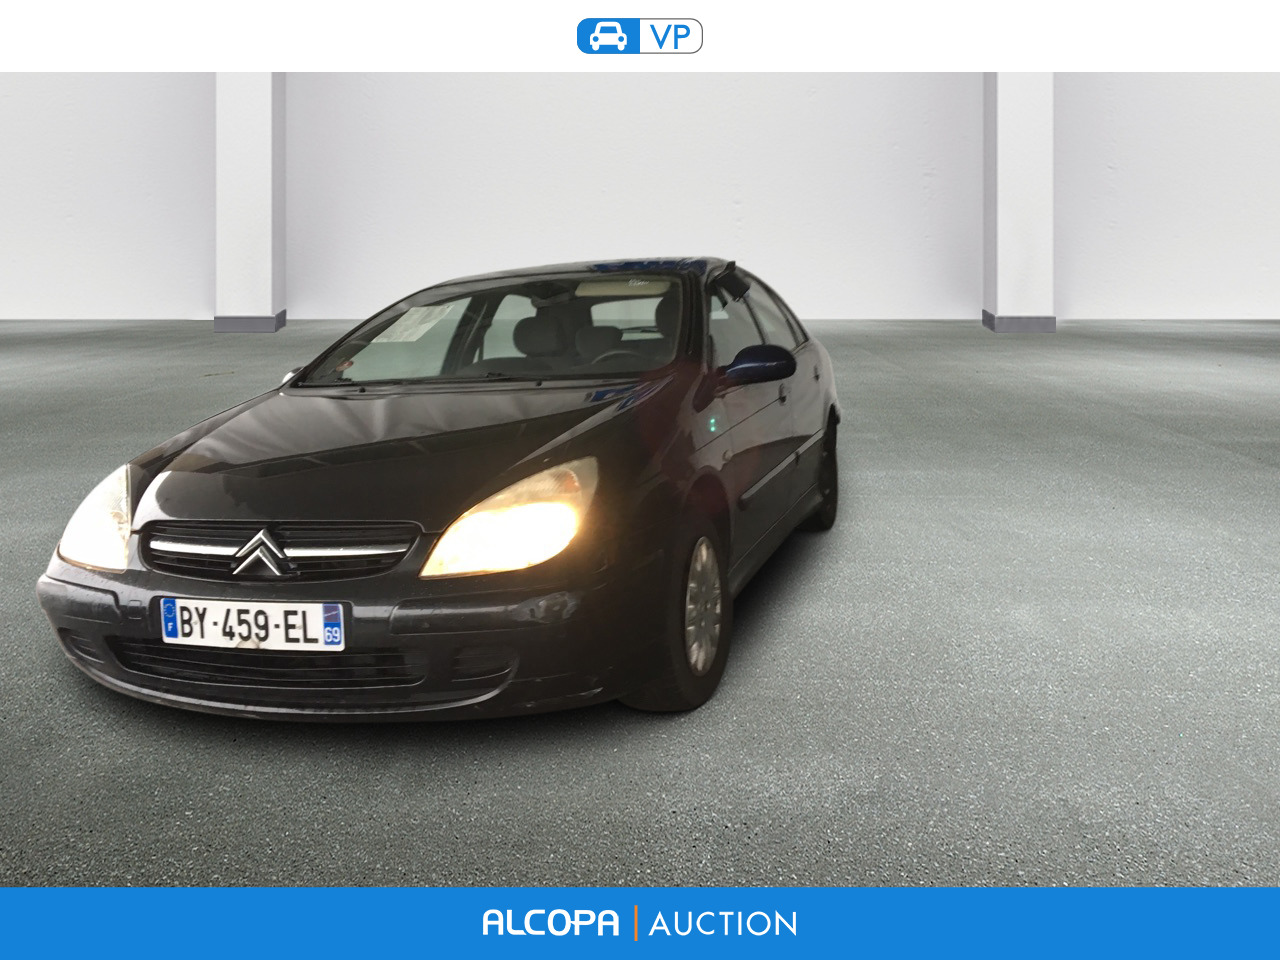 citroen c5 2 0 hdi 110 pack luxe alcopa auction. Black Bedroom Furniture Sets. Home Design Ideas